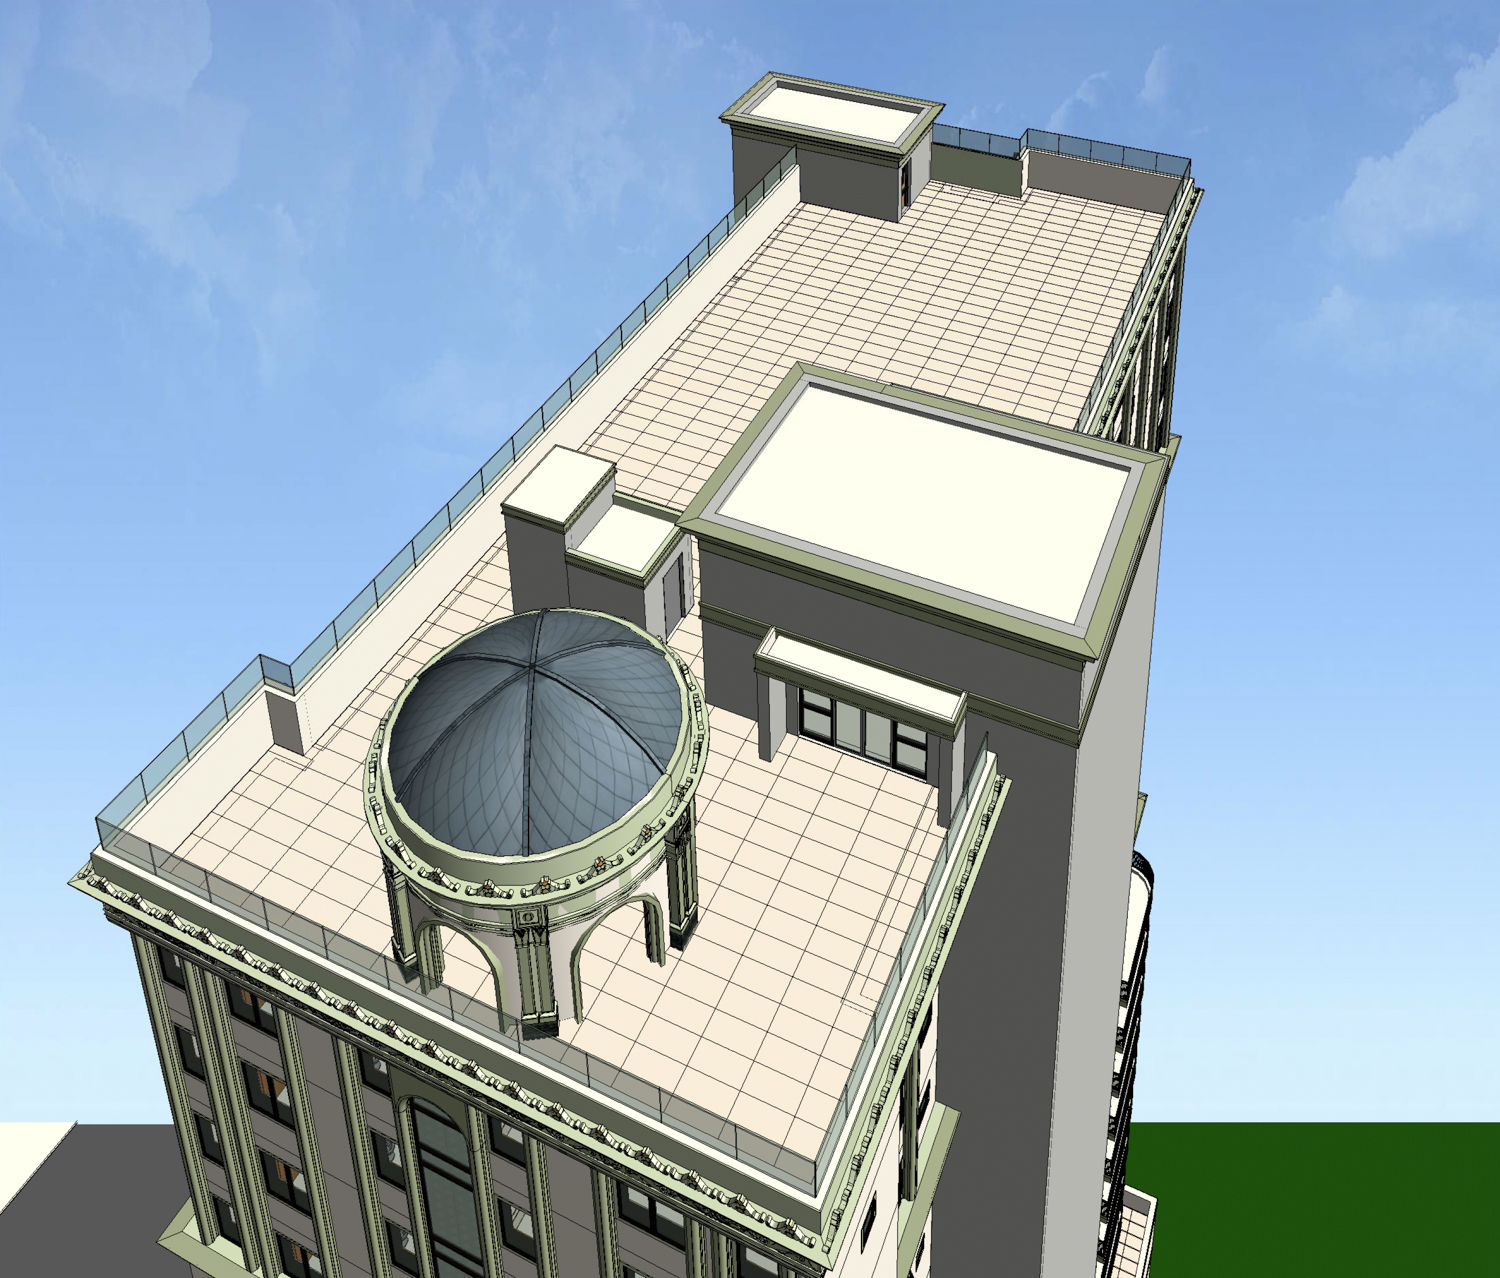 Rooftop terrace with domed gazebo ontop 19 North 2nd Street, image courtesy Anderson Architects